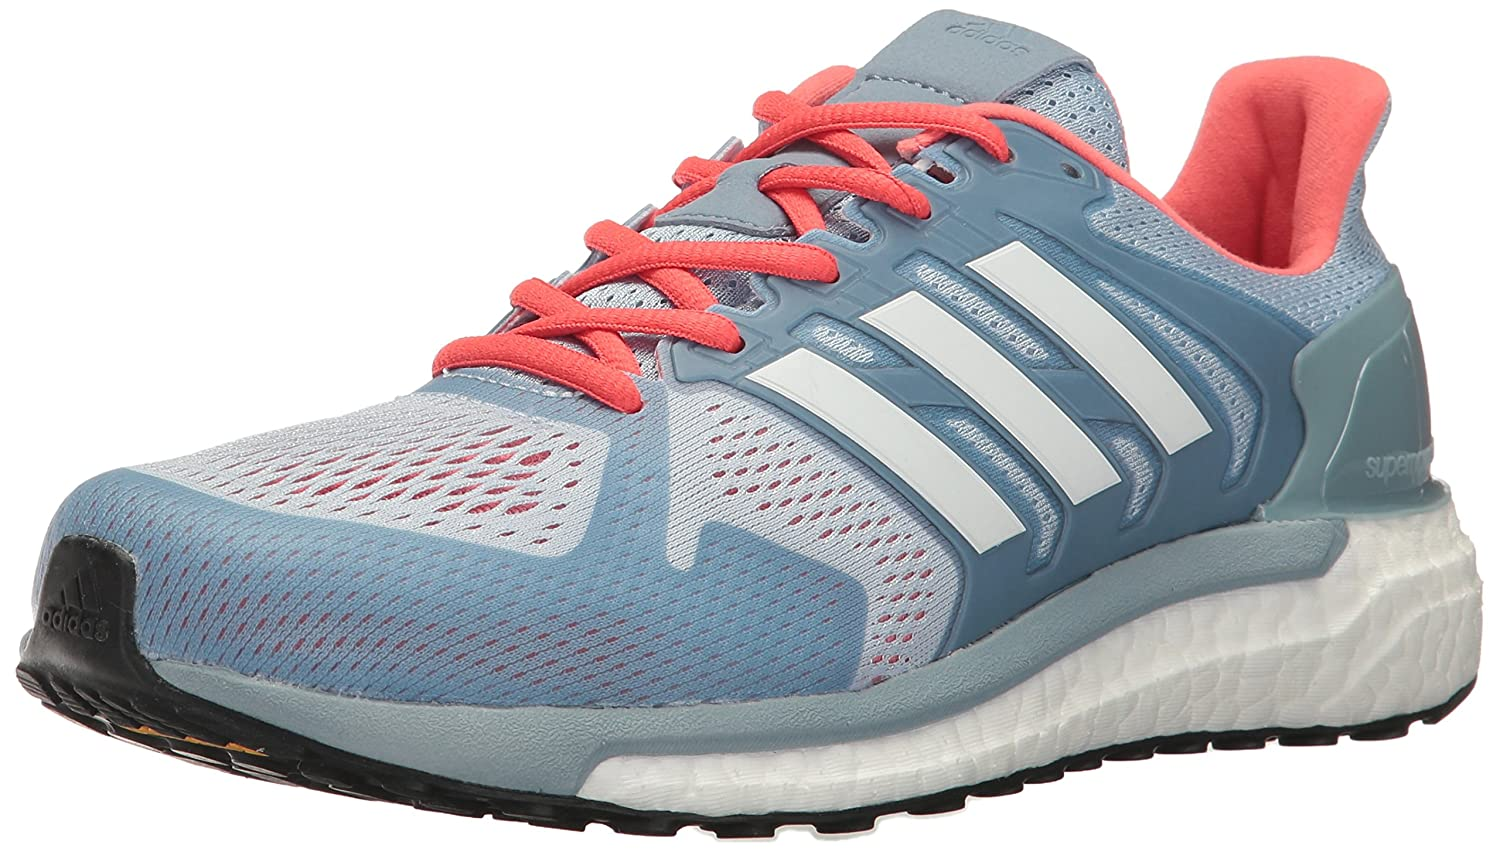 adidas Women's Supernova St W Running Shoe B01LP4N8PS 6 B(M) US|Easy Blue White/Easy Coral S